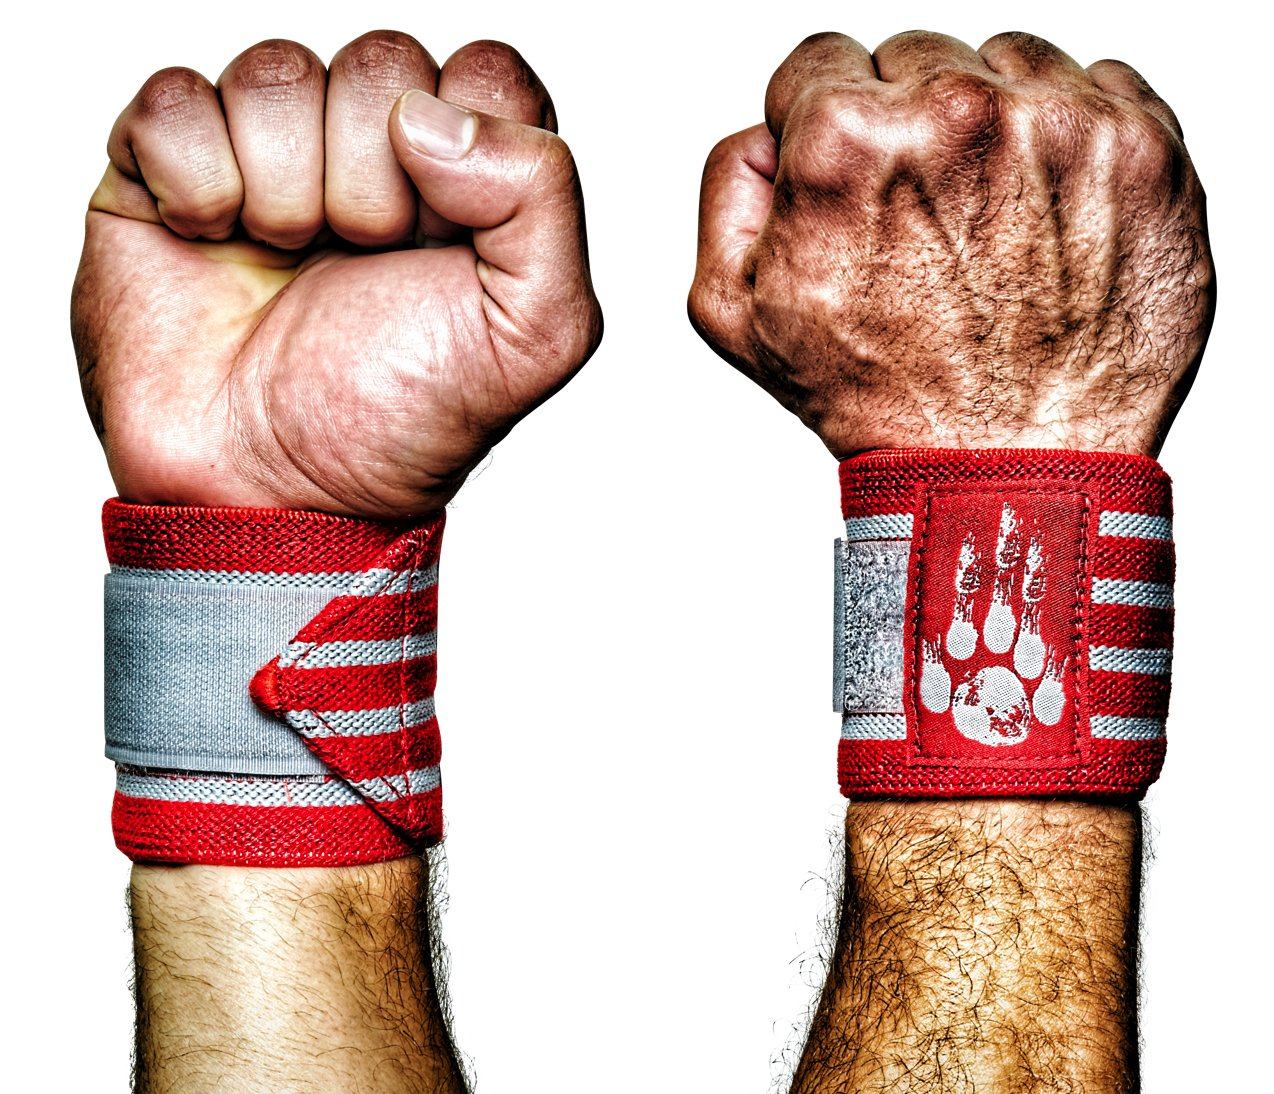 MANIMAL Wrist Wraps Designed for Crossfit, Weightlifting, Powerlifting, Strongman Training and Competition